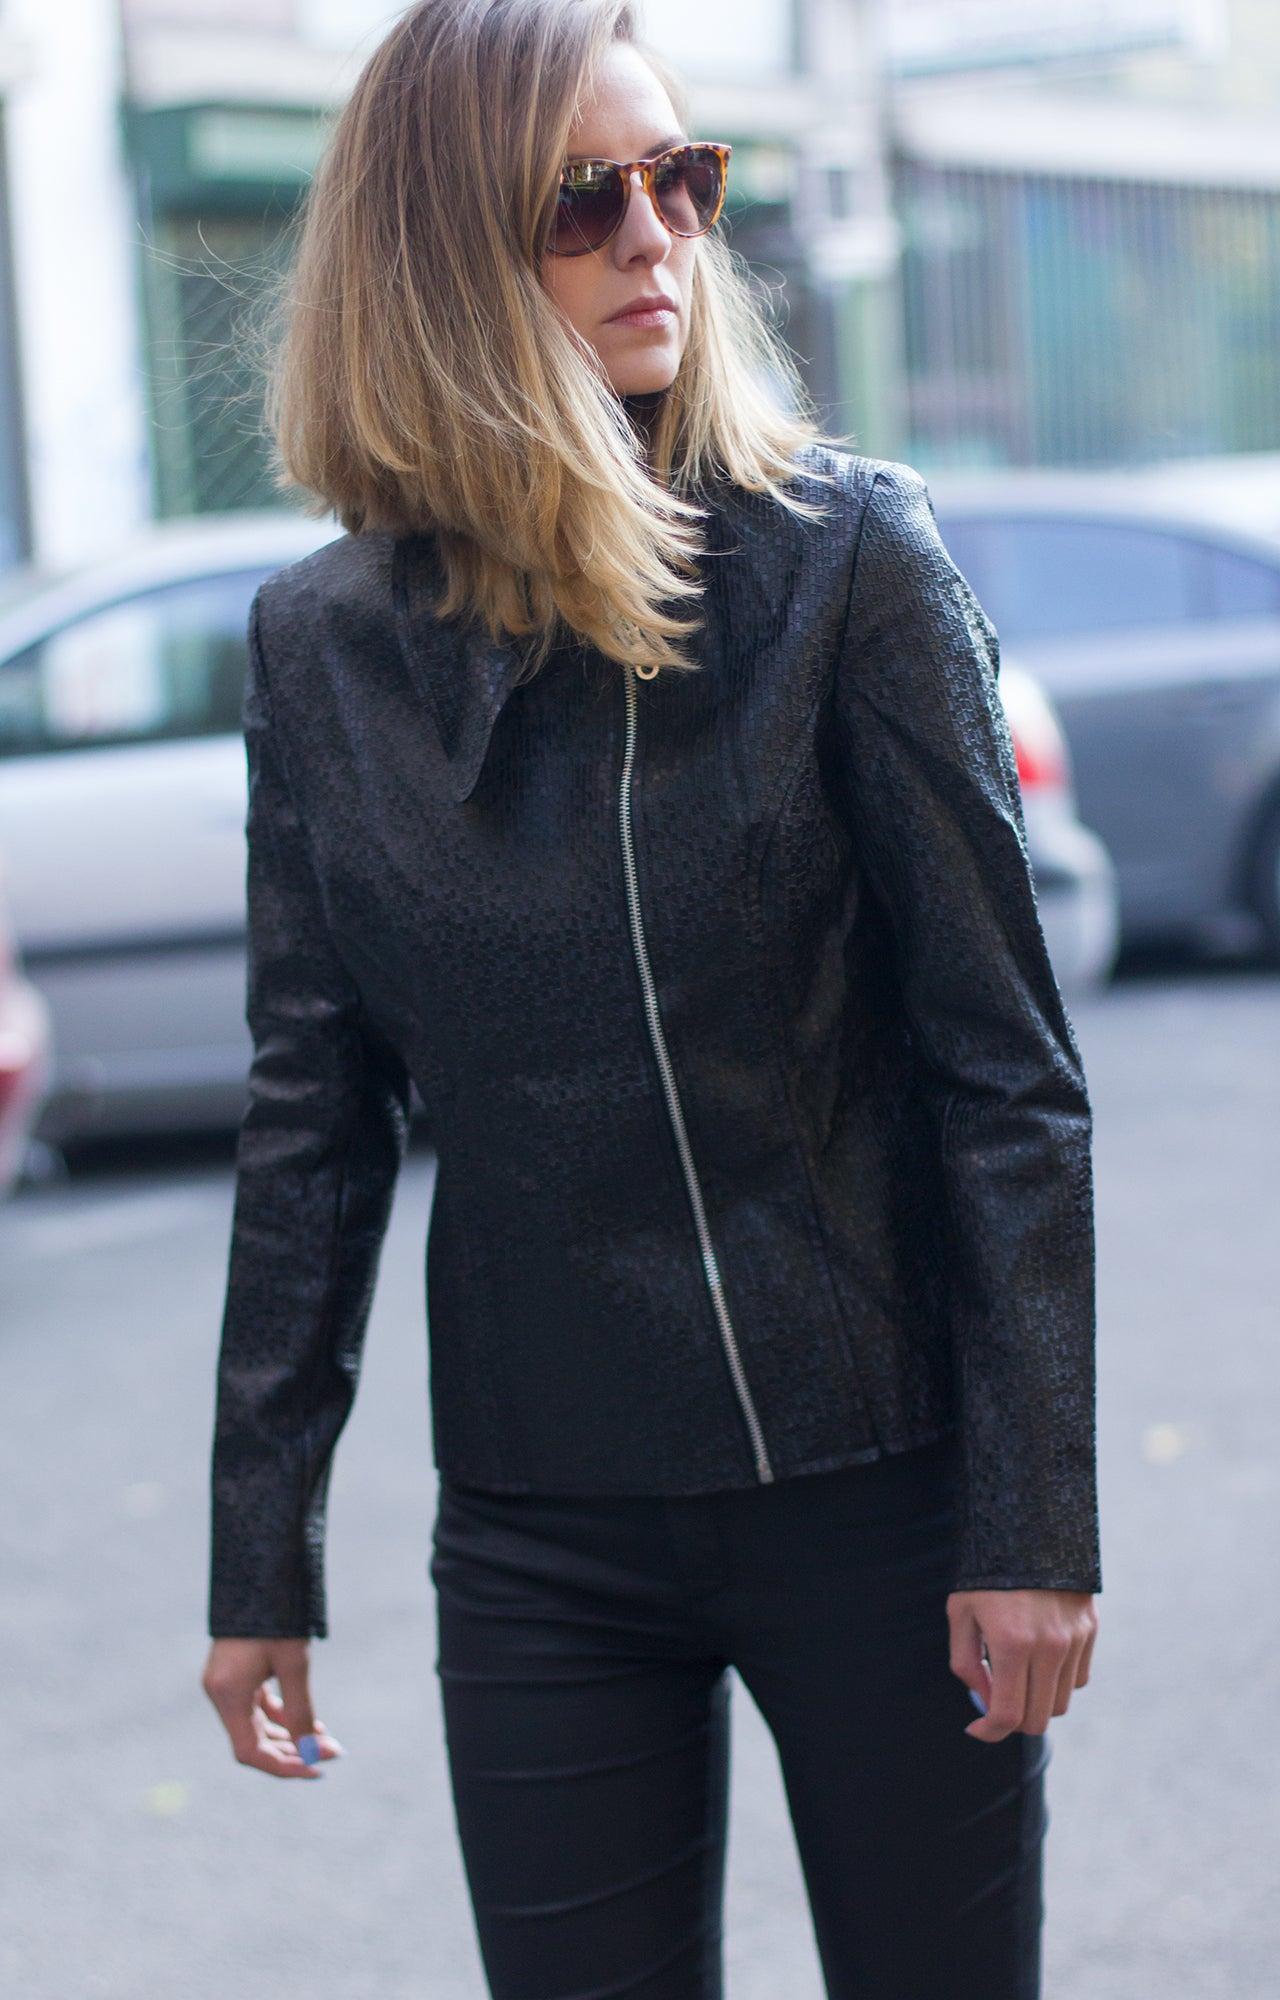 Black ladies leather biker jacket